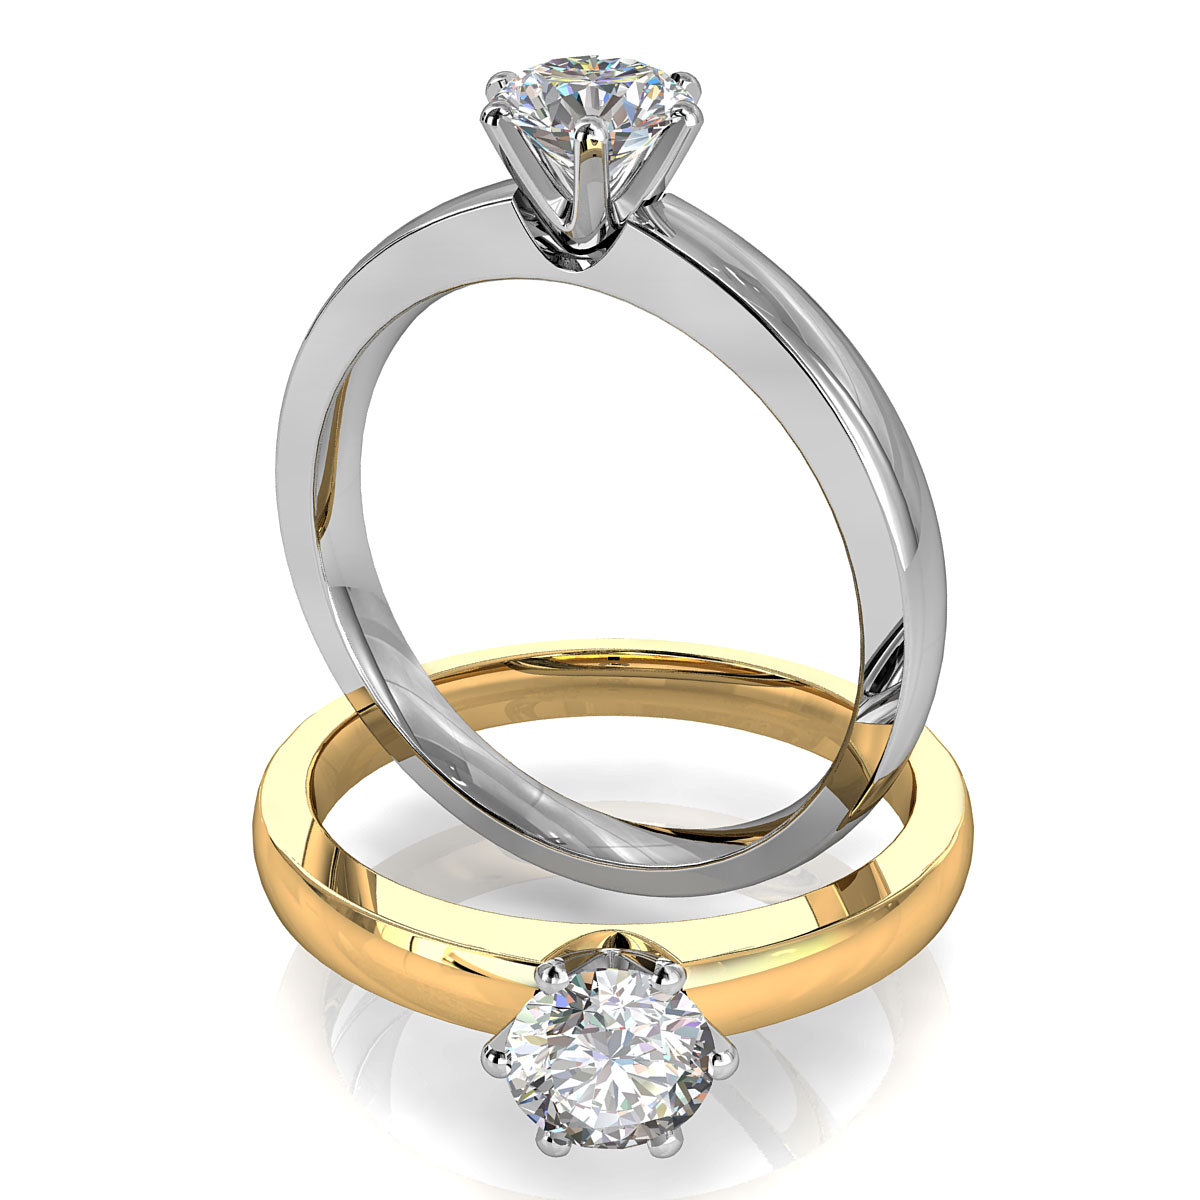 Round Brilliant Cut Solitaire Diamond Engagement Ring, 6 Offset Claws Set on Wide Straight Flat Band.